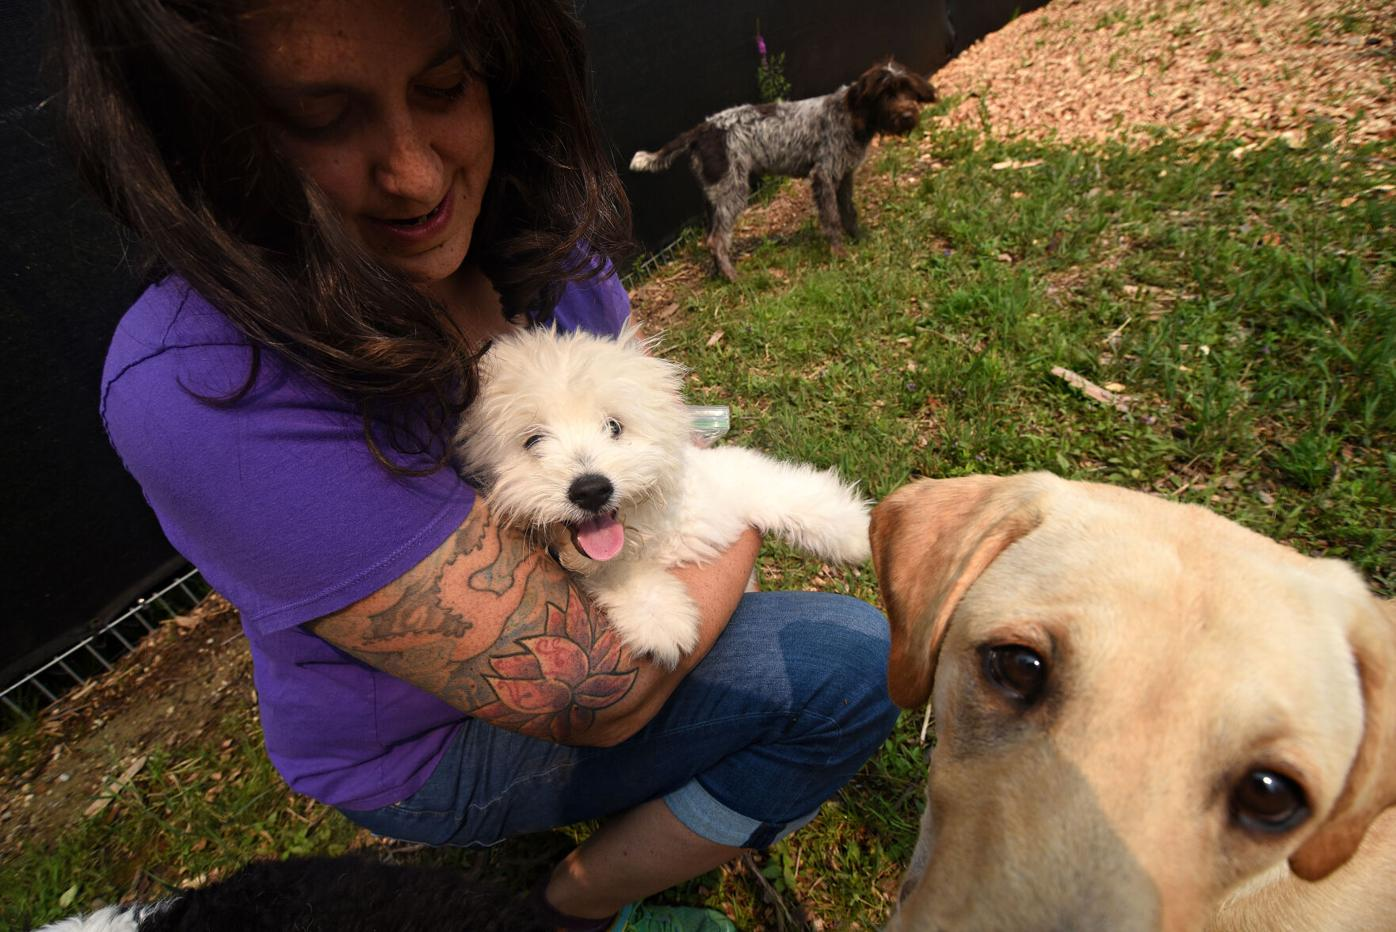 Woman in a purple shirt cuddles small white dog